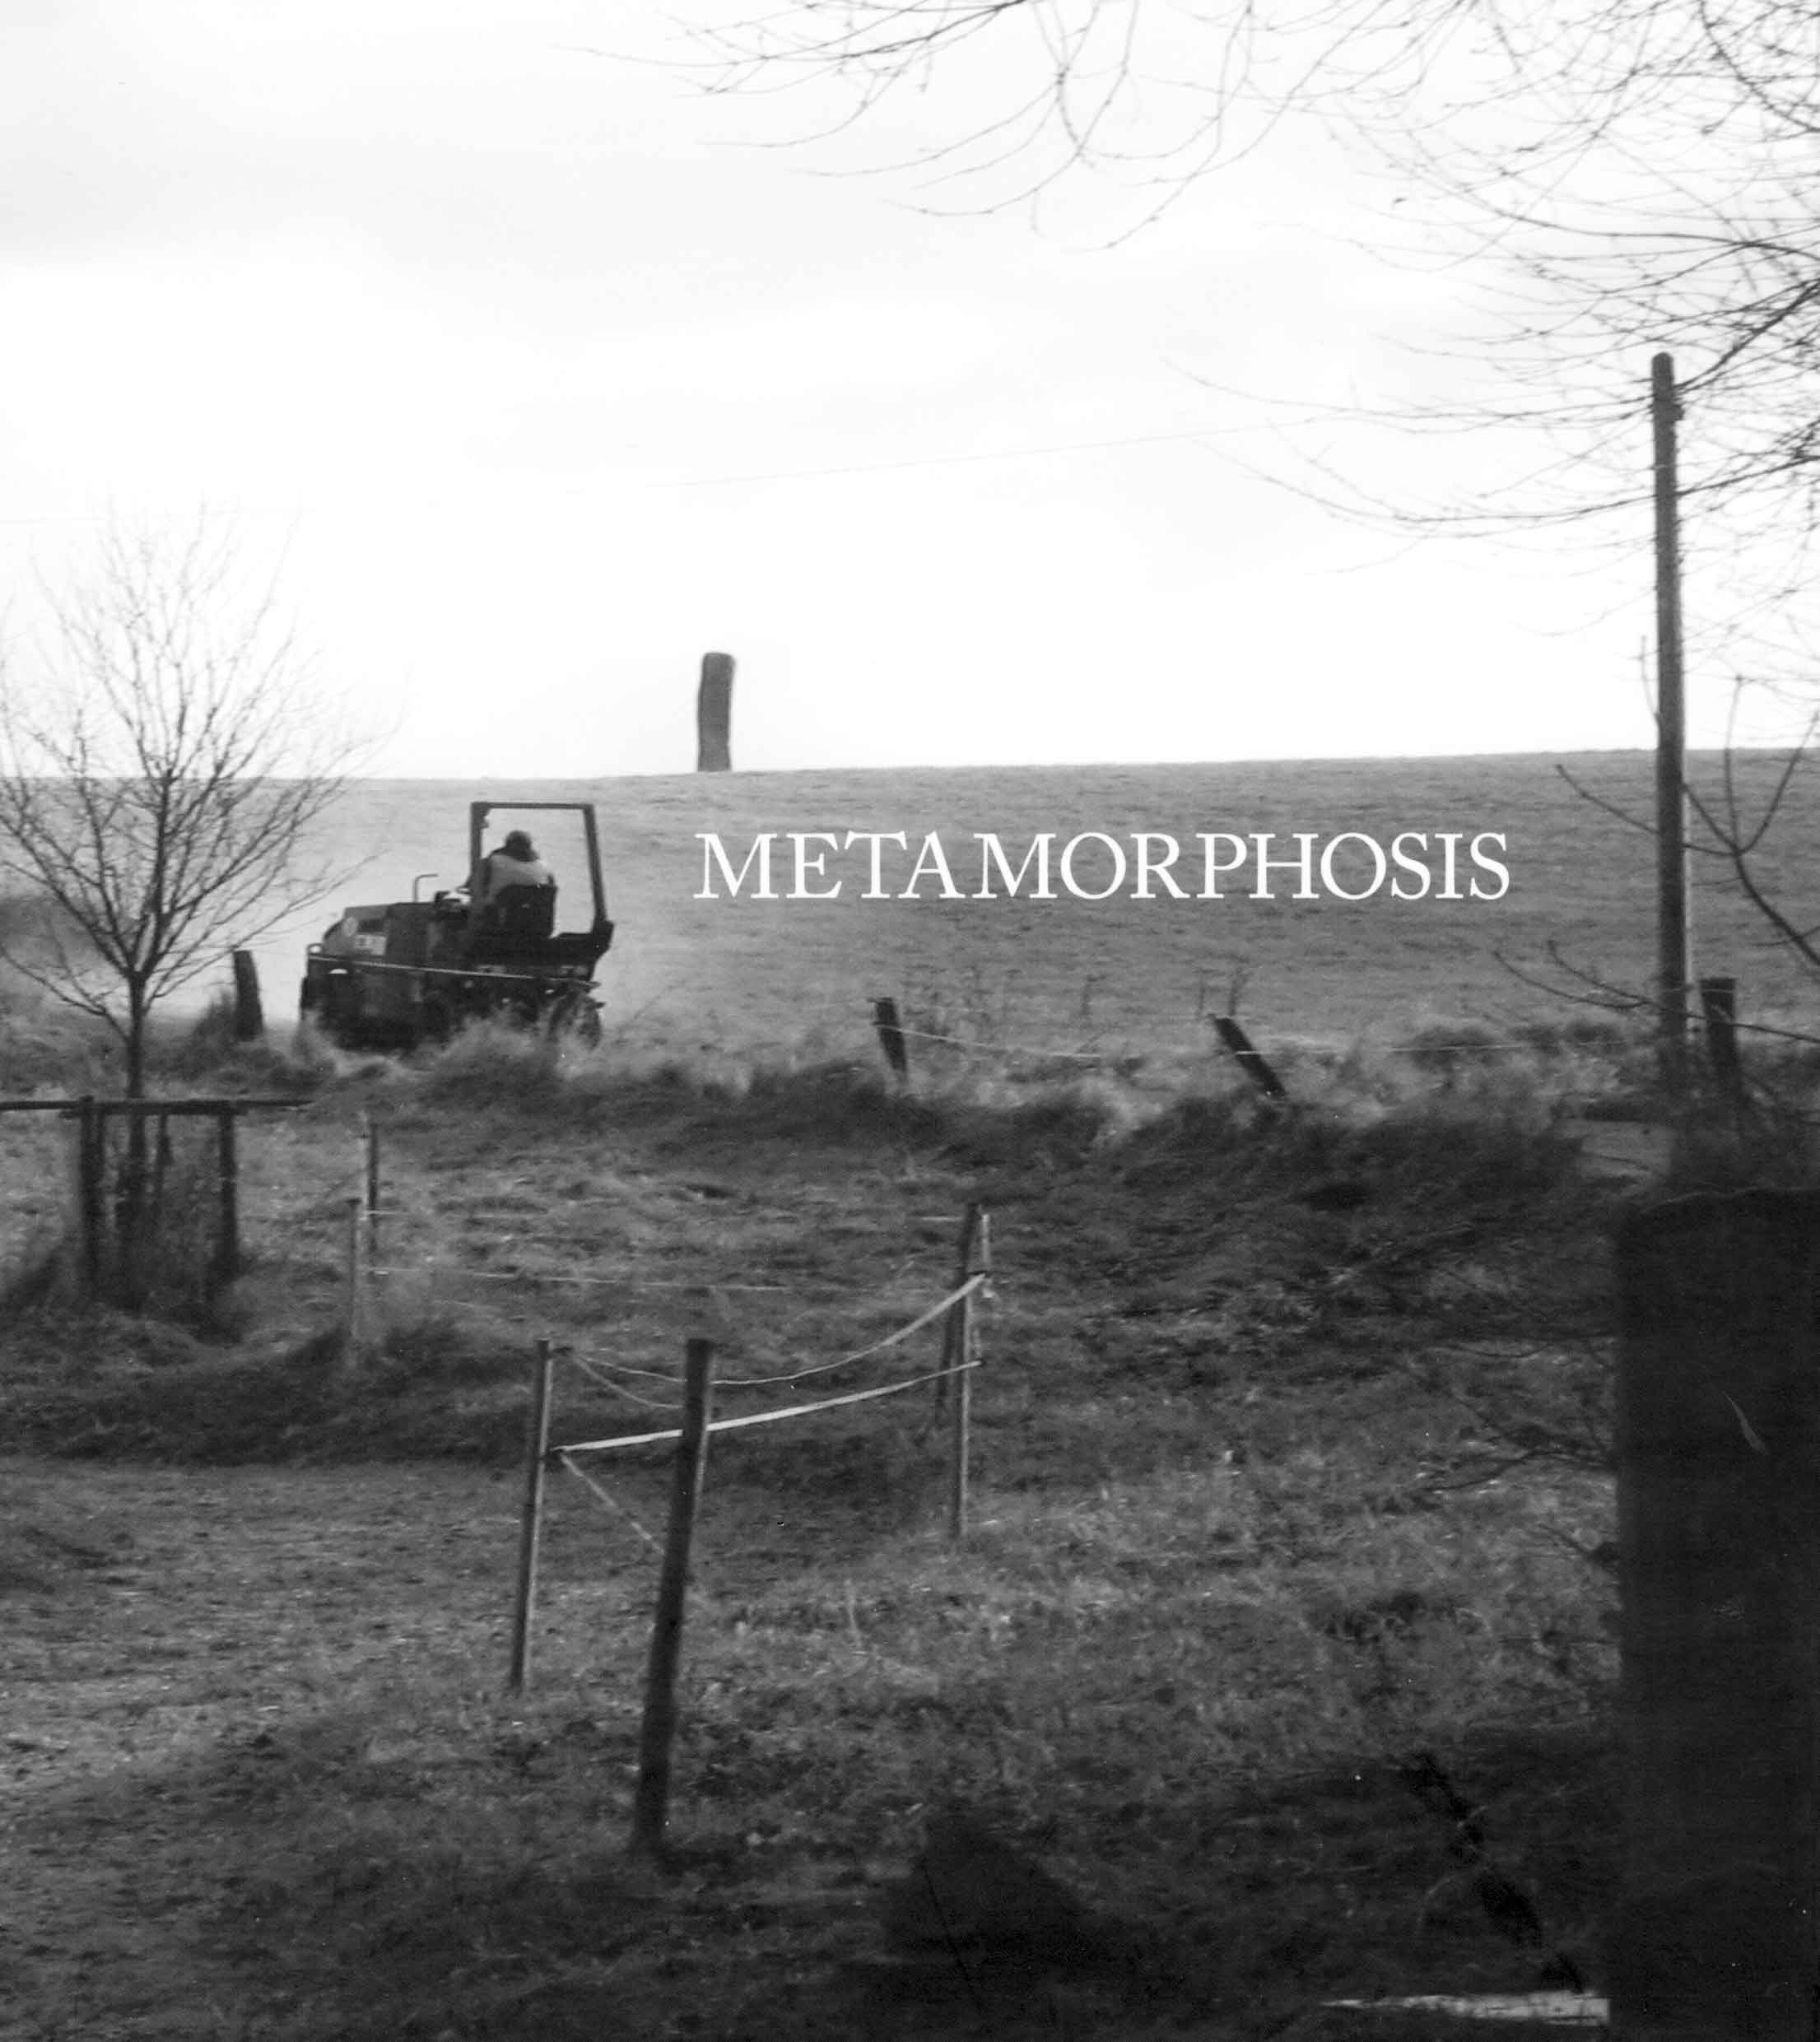 Felicitas Frischmuth, James Reineking: Metamorphosis